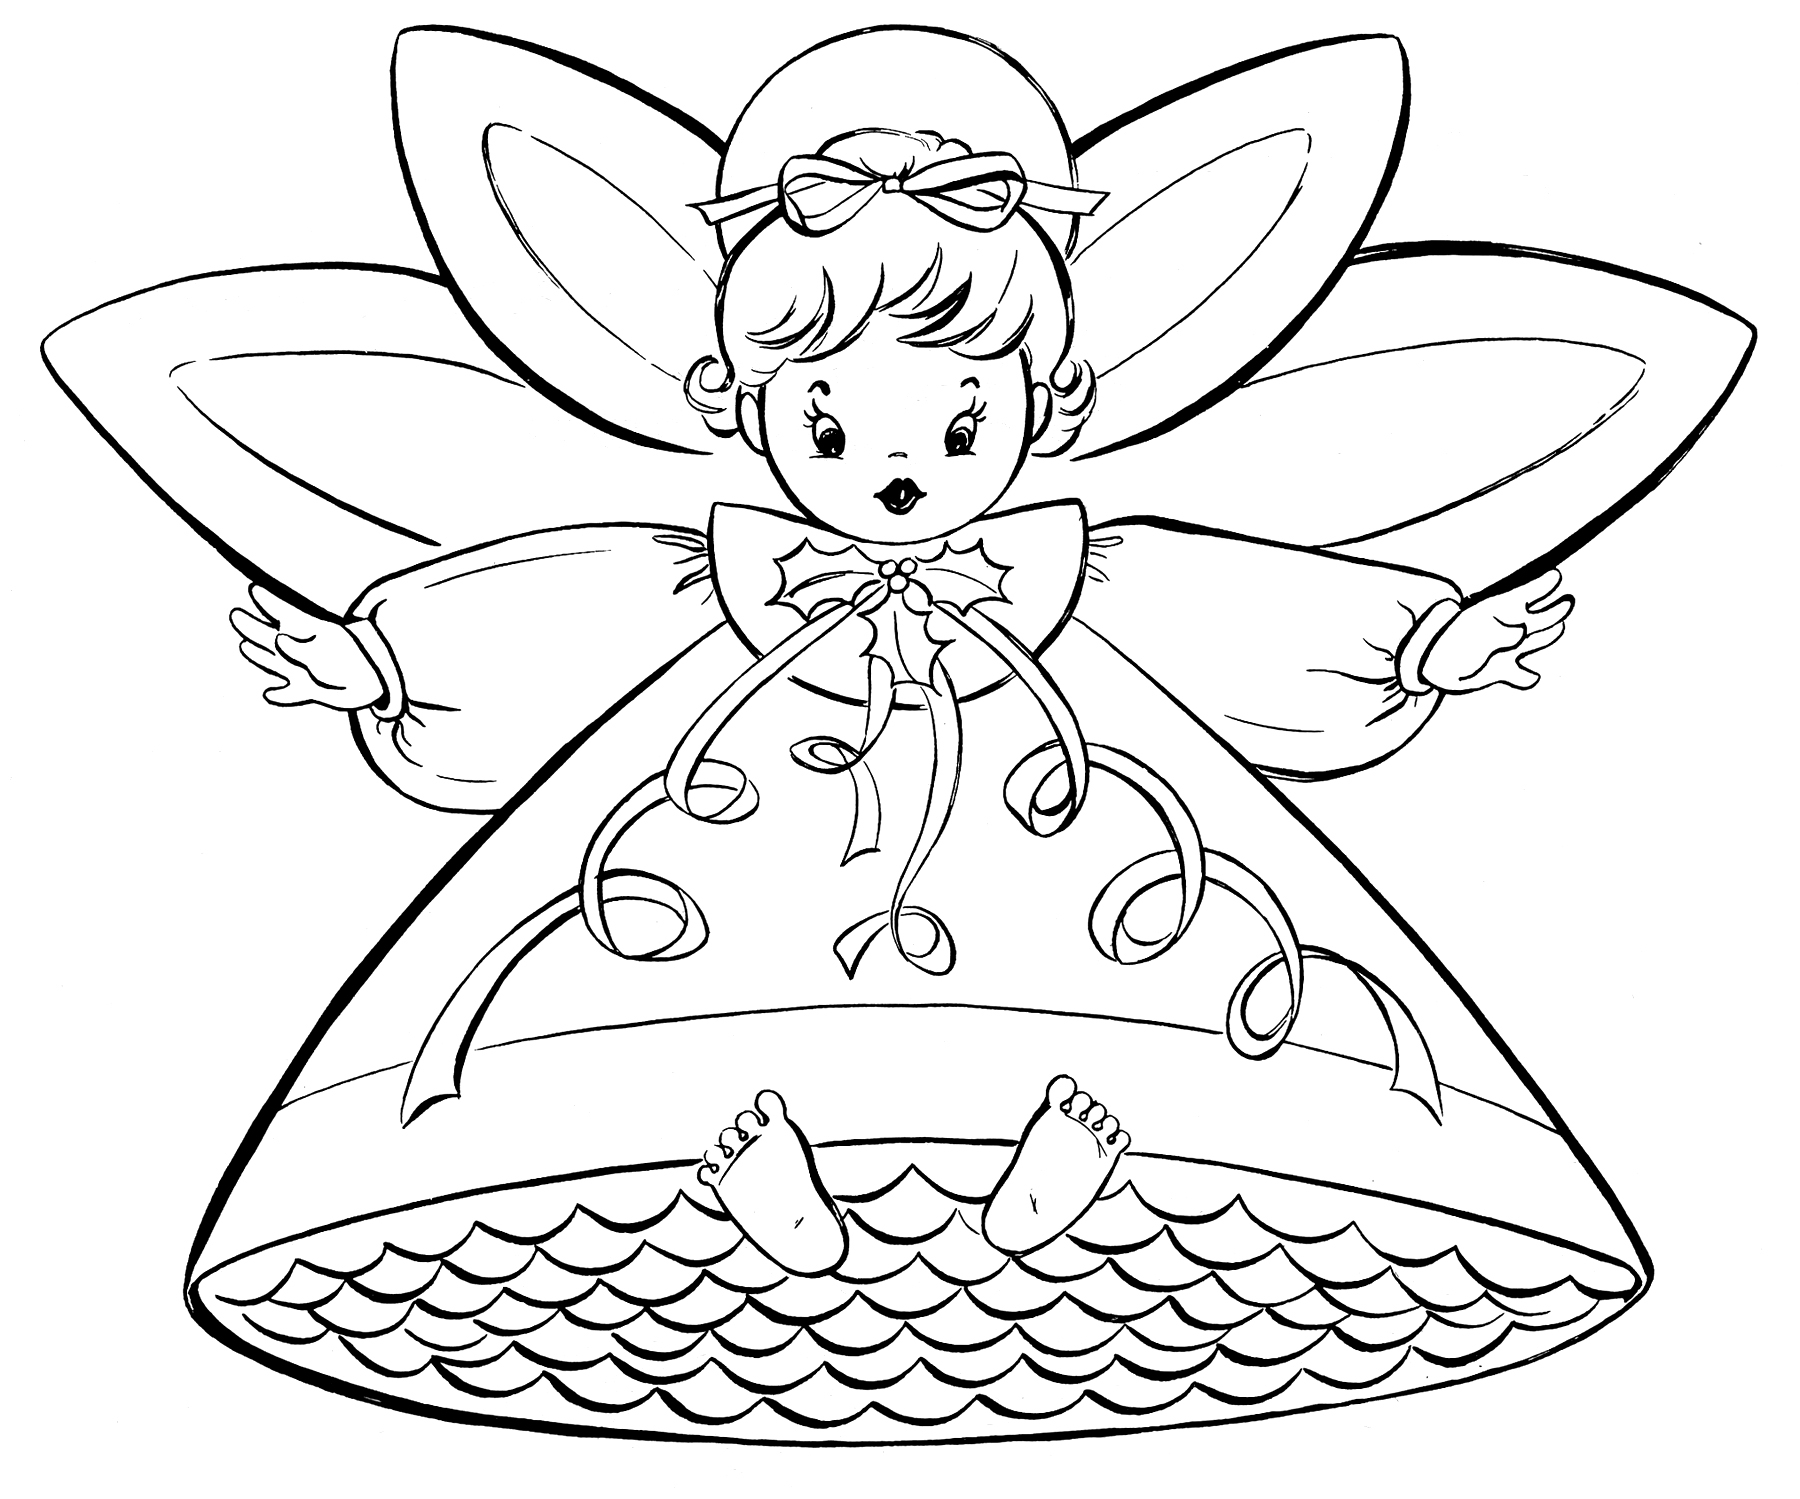 Christmas Coloring Sheets For Older Students With Free Pages Retro Angels The Graphics Fairy